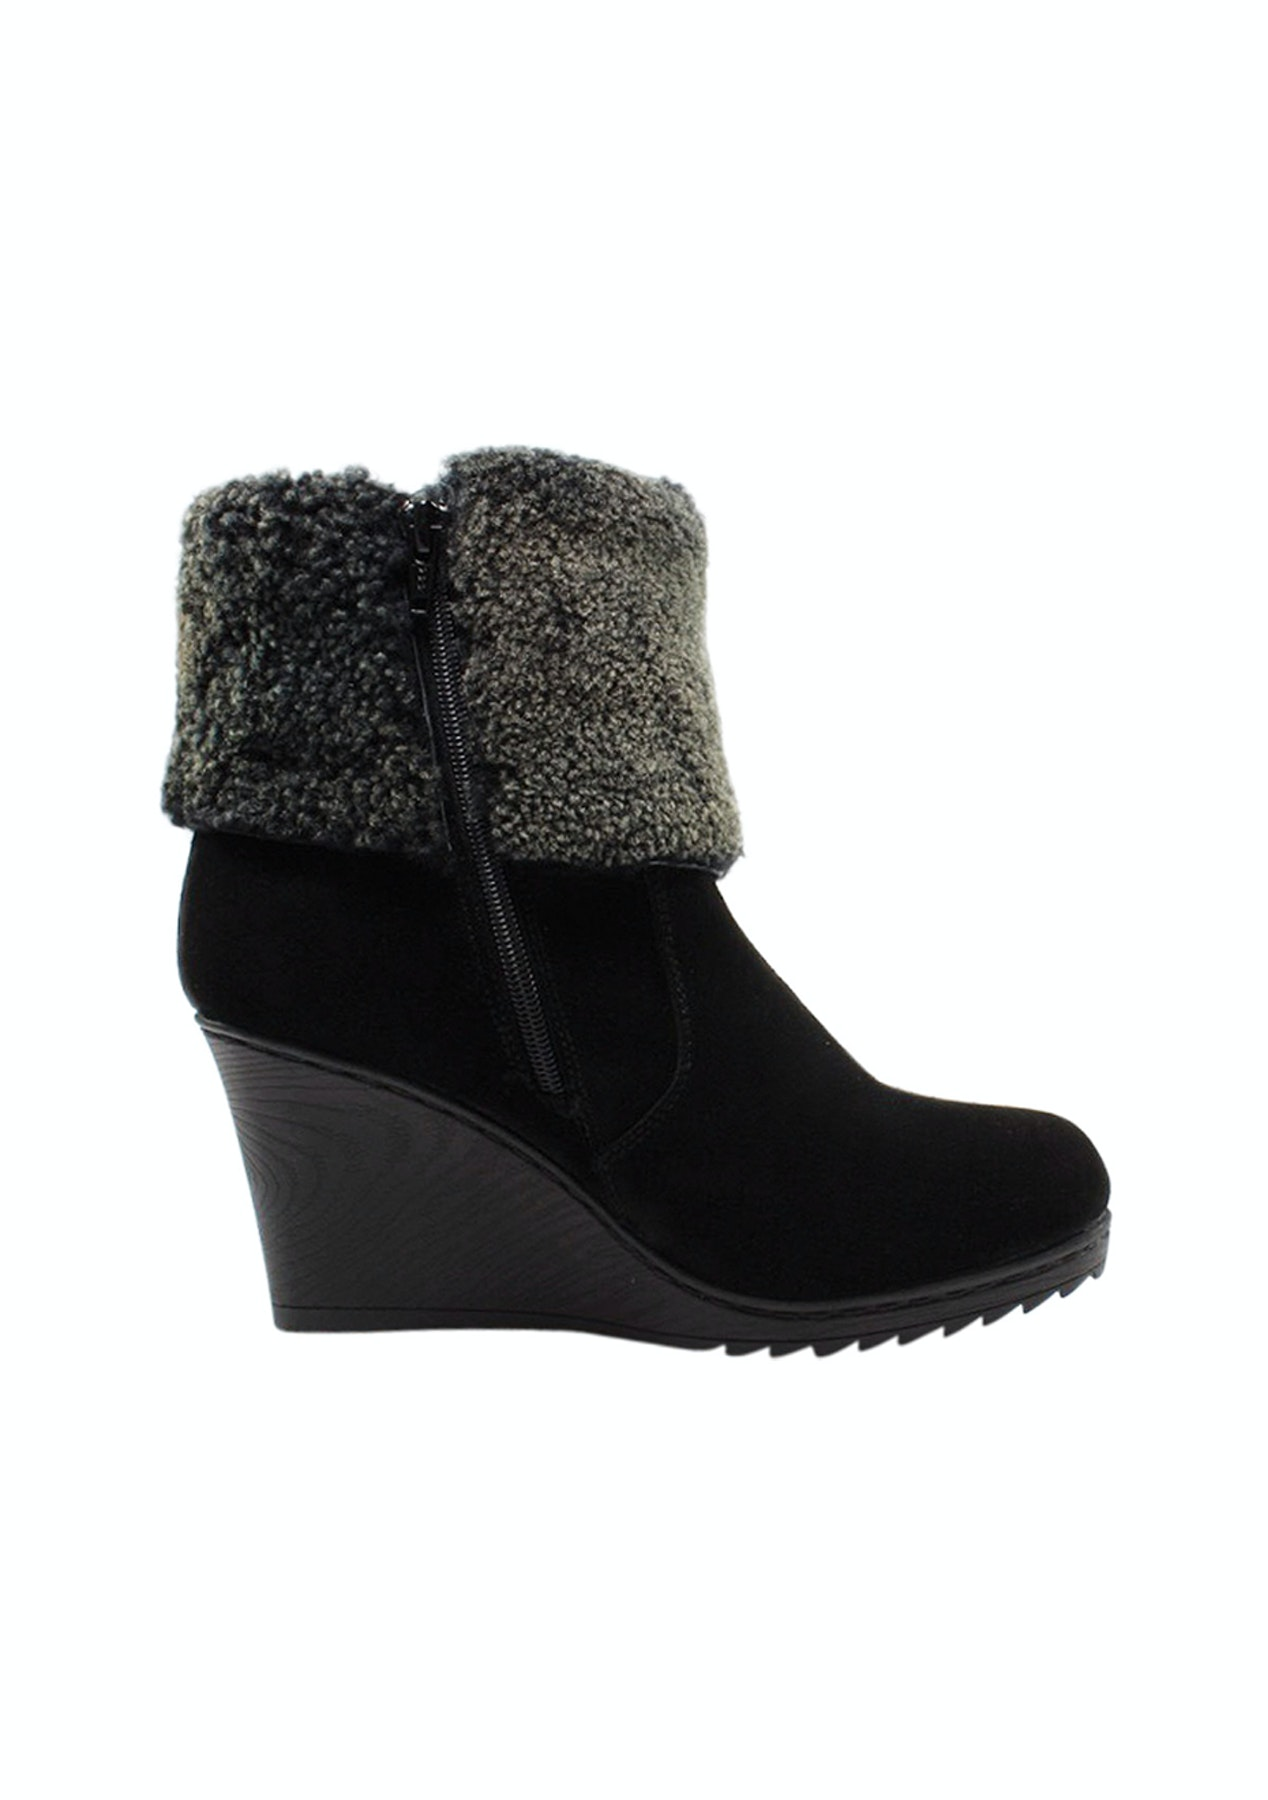 a777eaa711b Auzland Ugg Ladies Leather Fashion Wedge Boot Stml0417 Black - Auzland Uggs  From  37.99 - Onceit